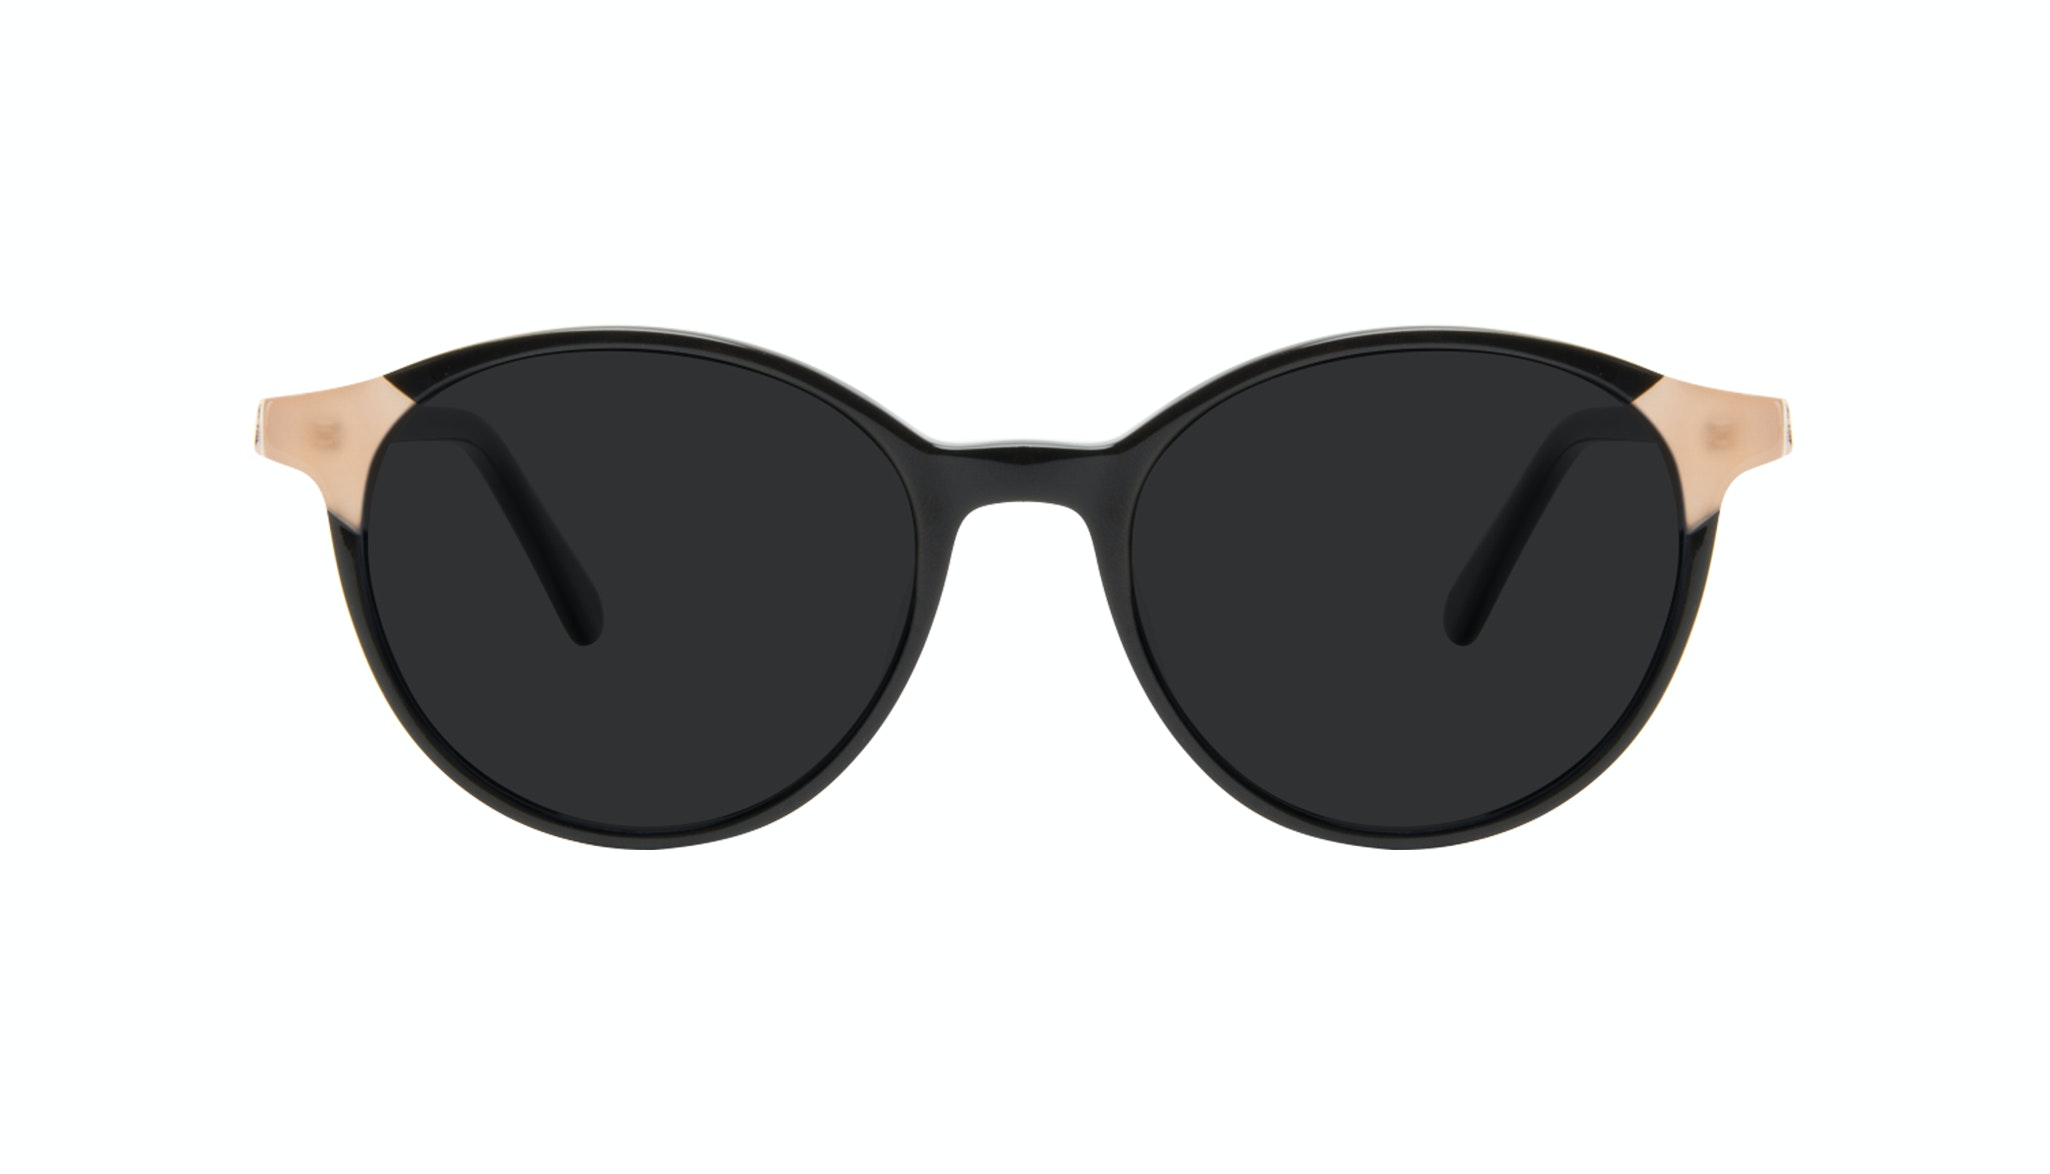 Affordable Fashion Glasses Round Sunglasses Women Vivid Black Ivory Front